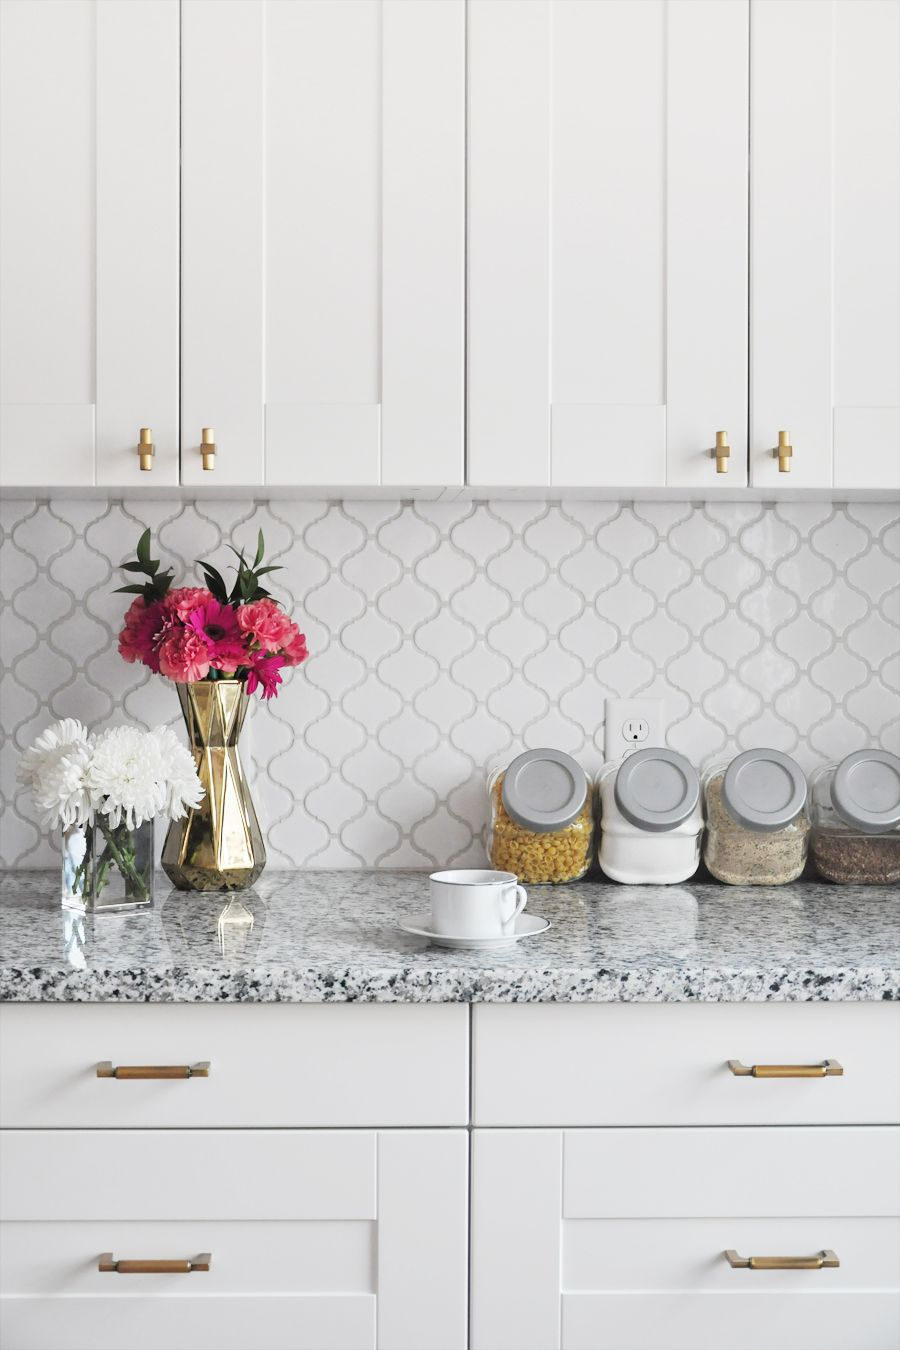 How to tile a kitchen backsplash diy tutorial sponsored by wayfair how to tile a kitchen backsplash diy tutorial dailygadgetfo Image collections